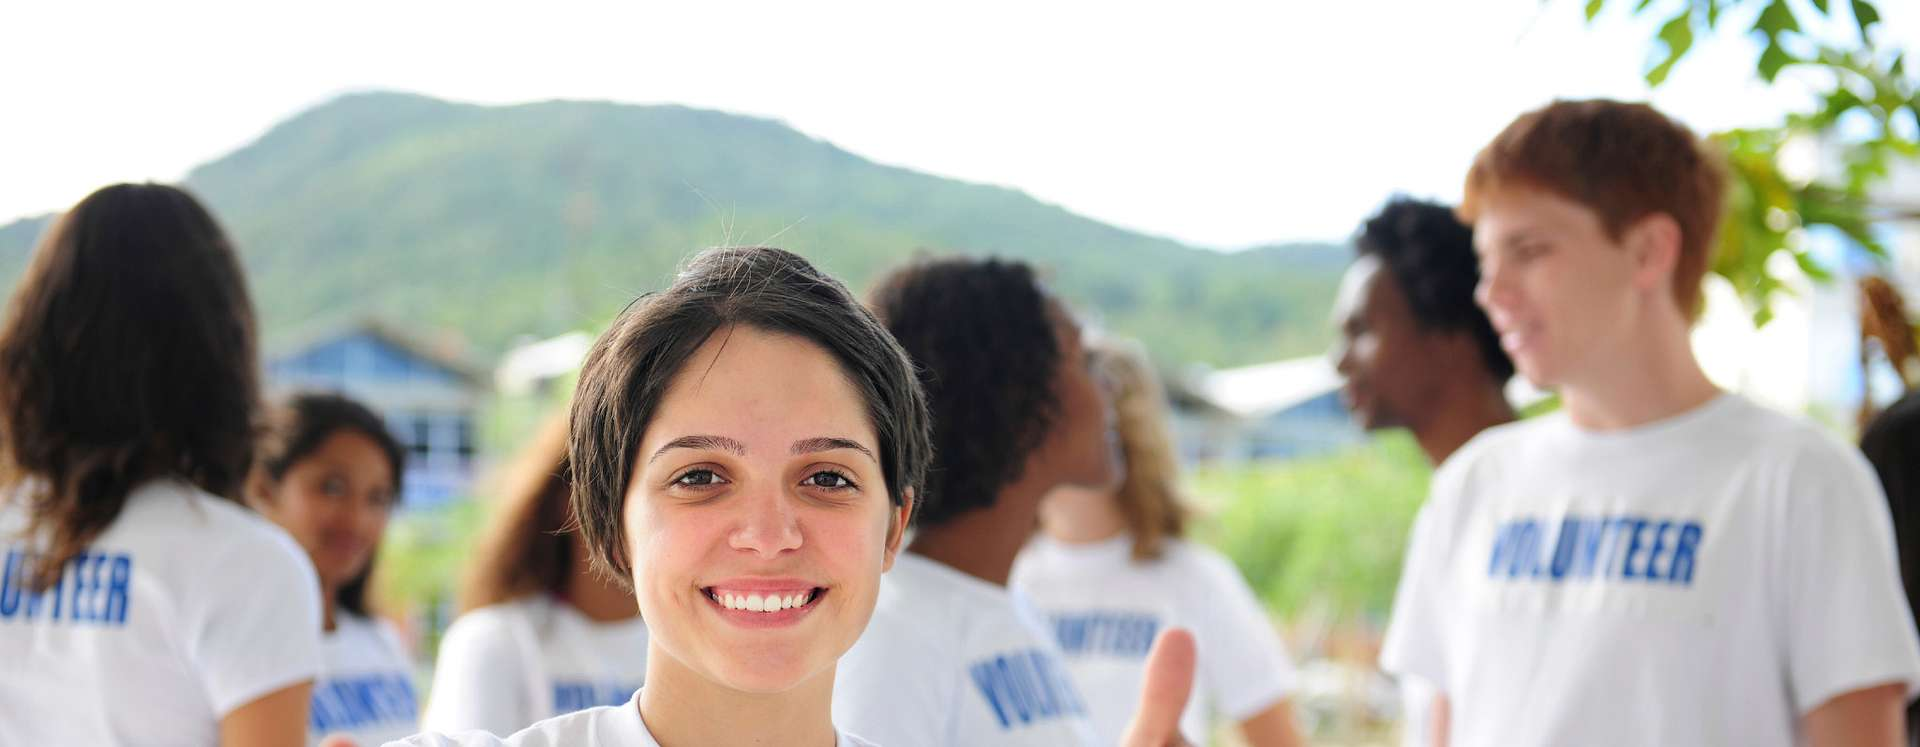 A young, smiling female volunteer showing both thumbs up with a group of other volunteers in the background.